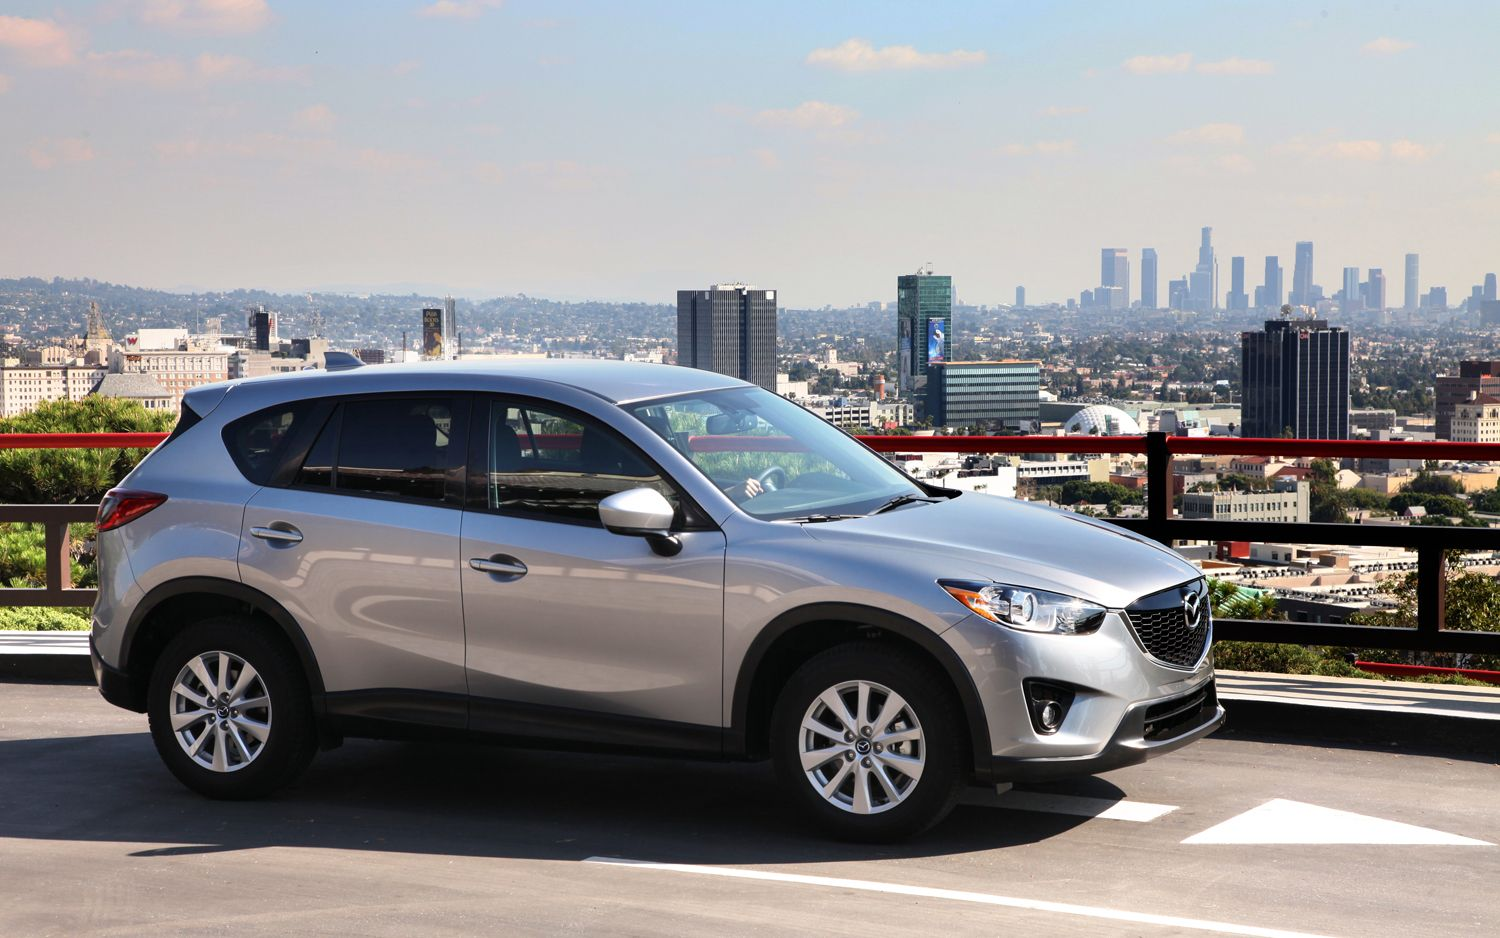 2013 Mazda CX 5 In View Of Downtown Los Angeles1